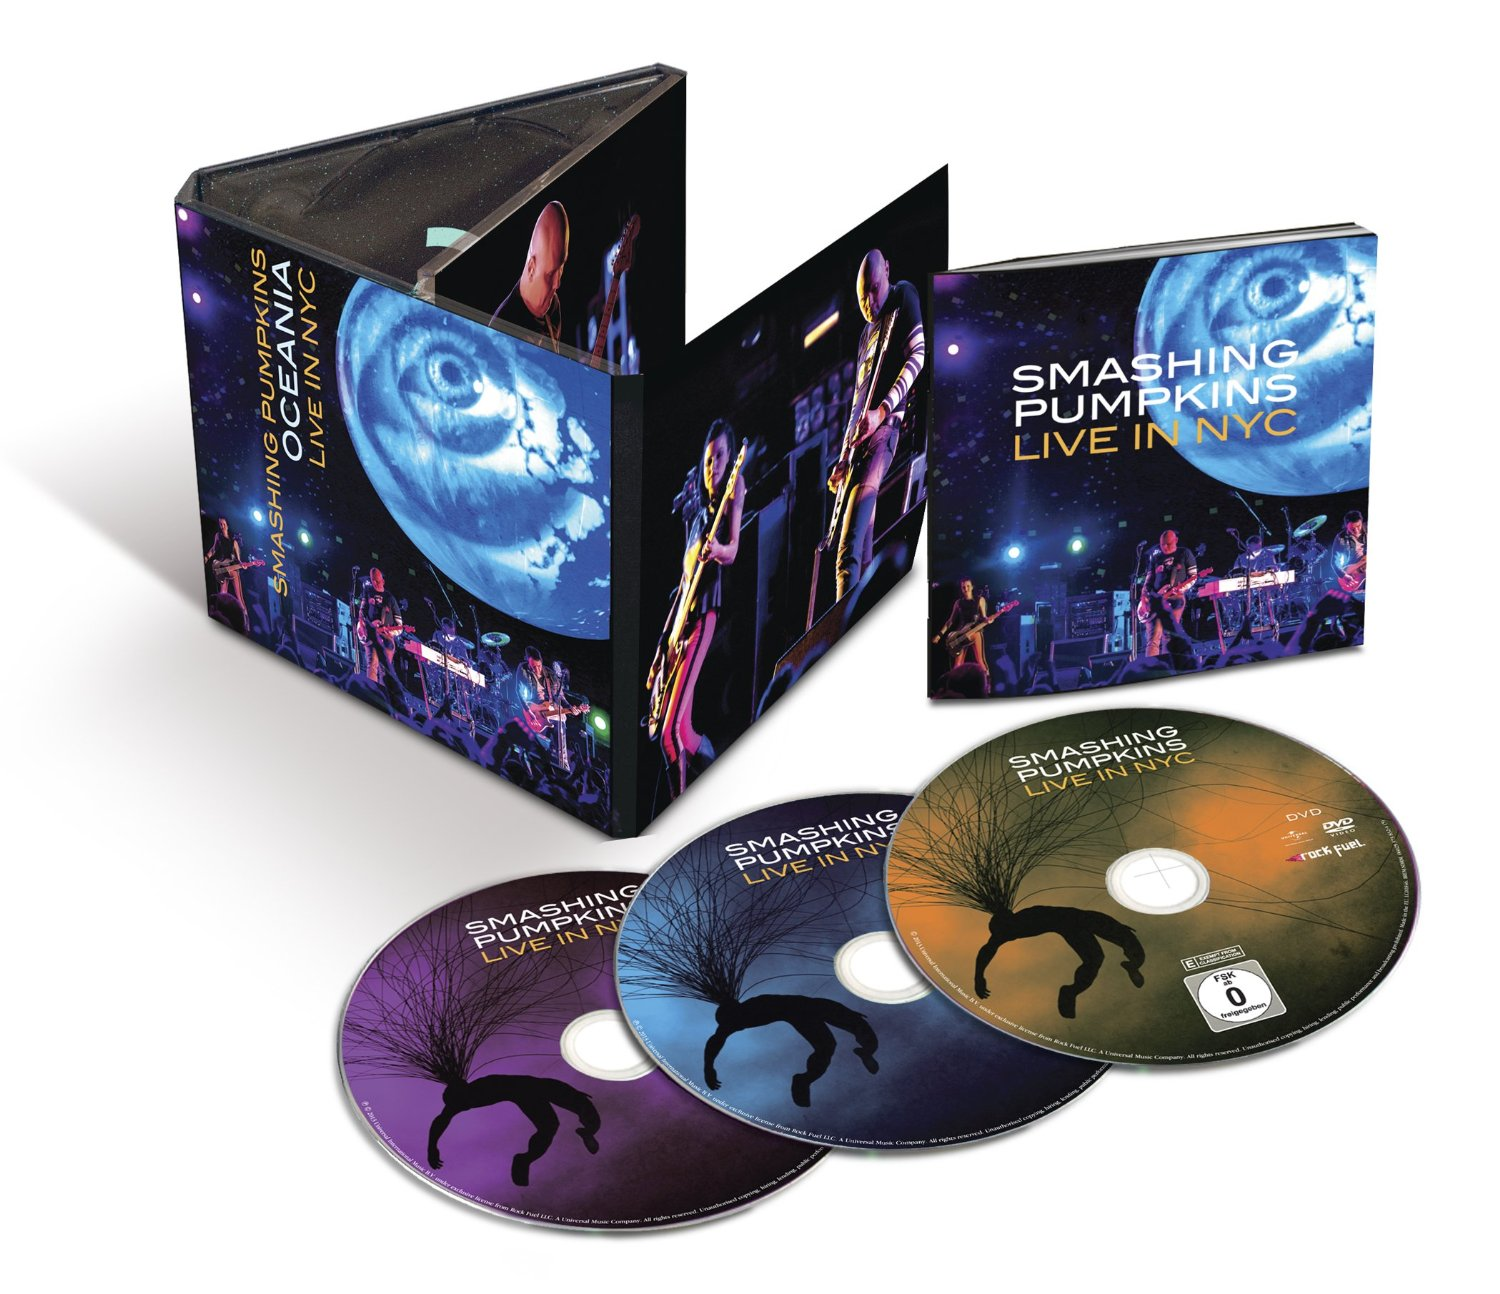 The Smashing Pumpkins / Oceania: Live In NYC 2CD+DVD